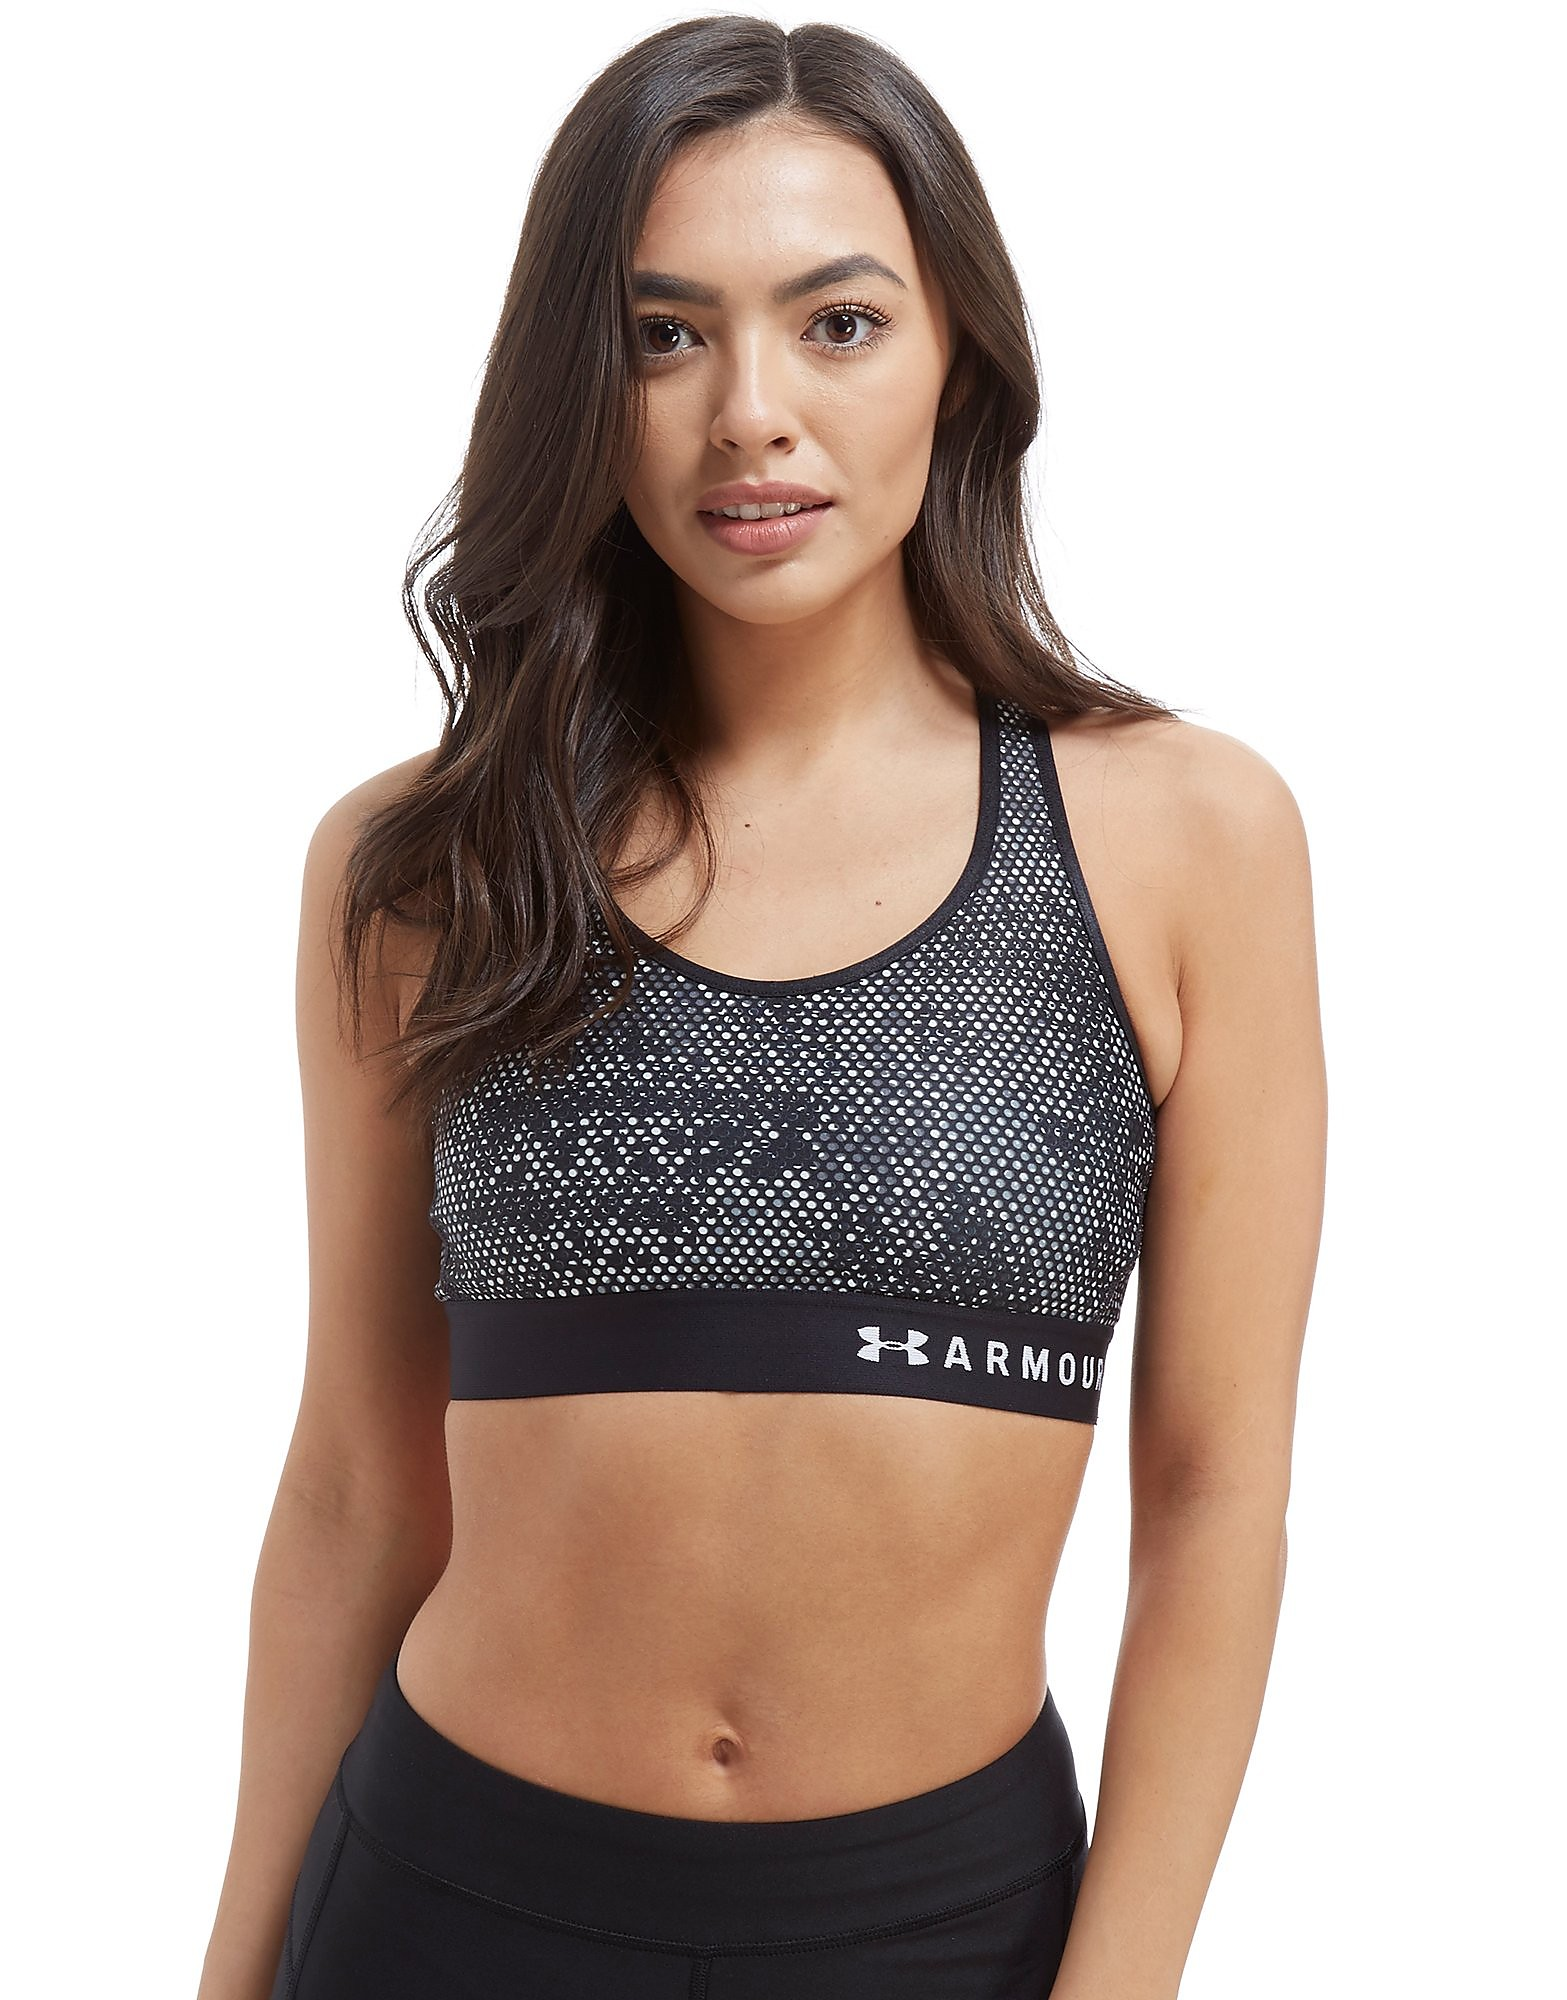 Under Armour Keyhole Print Sports Bra